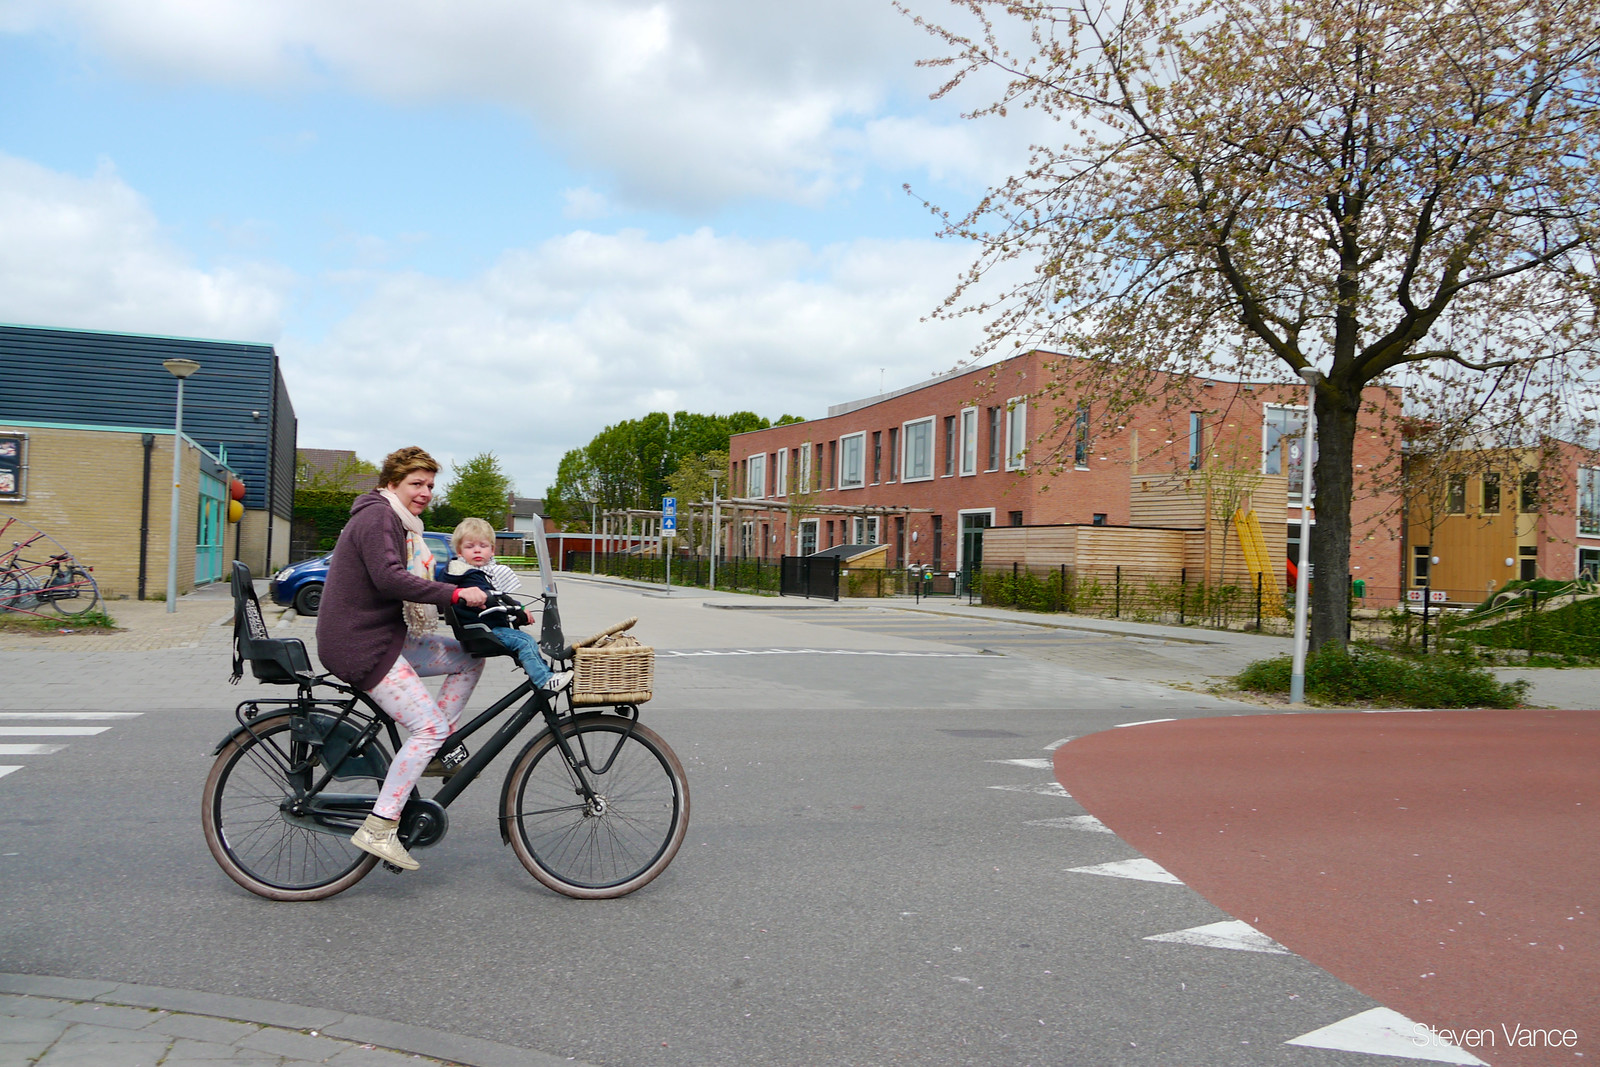 A biking family about to enter the cycle priority street